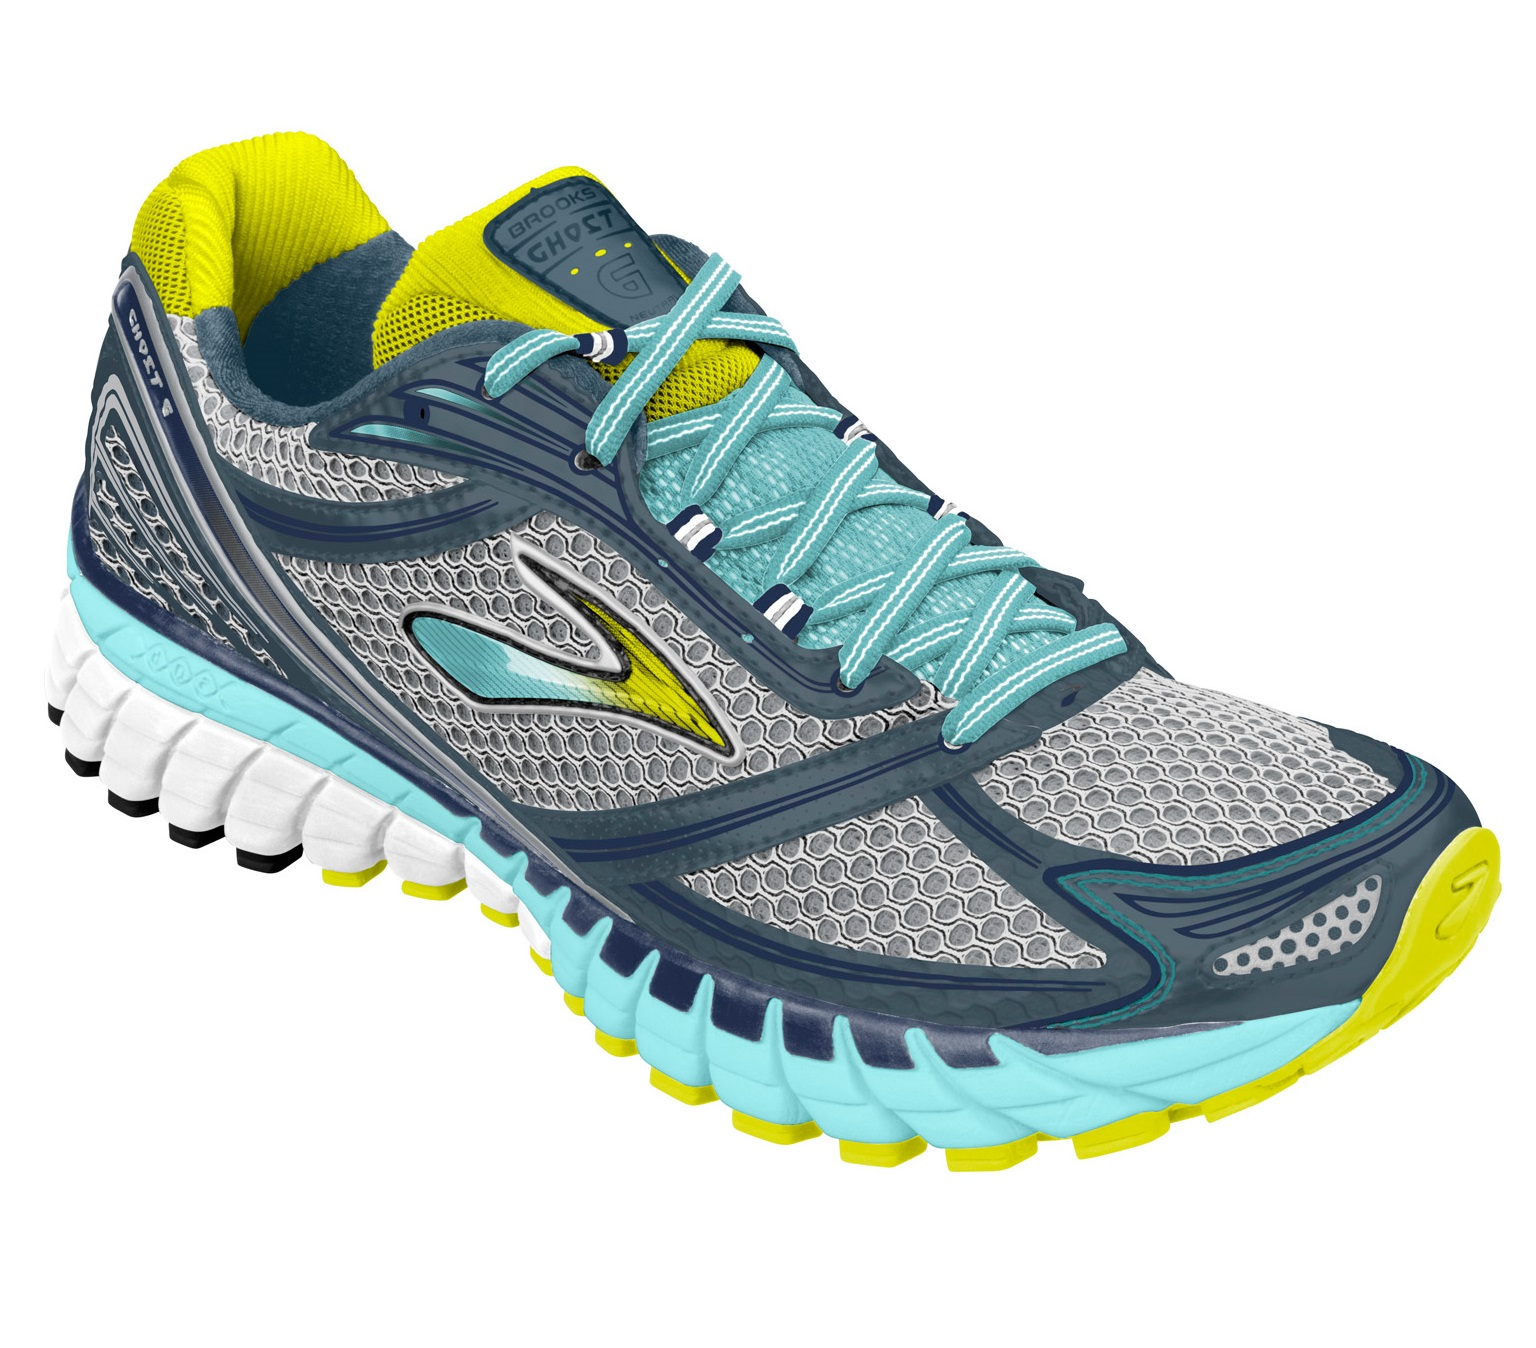 320af605c9e The Running Shoe Review    Brooks Ghost 6